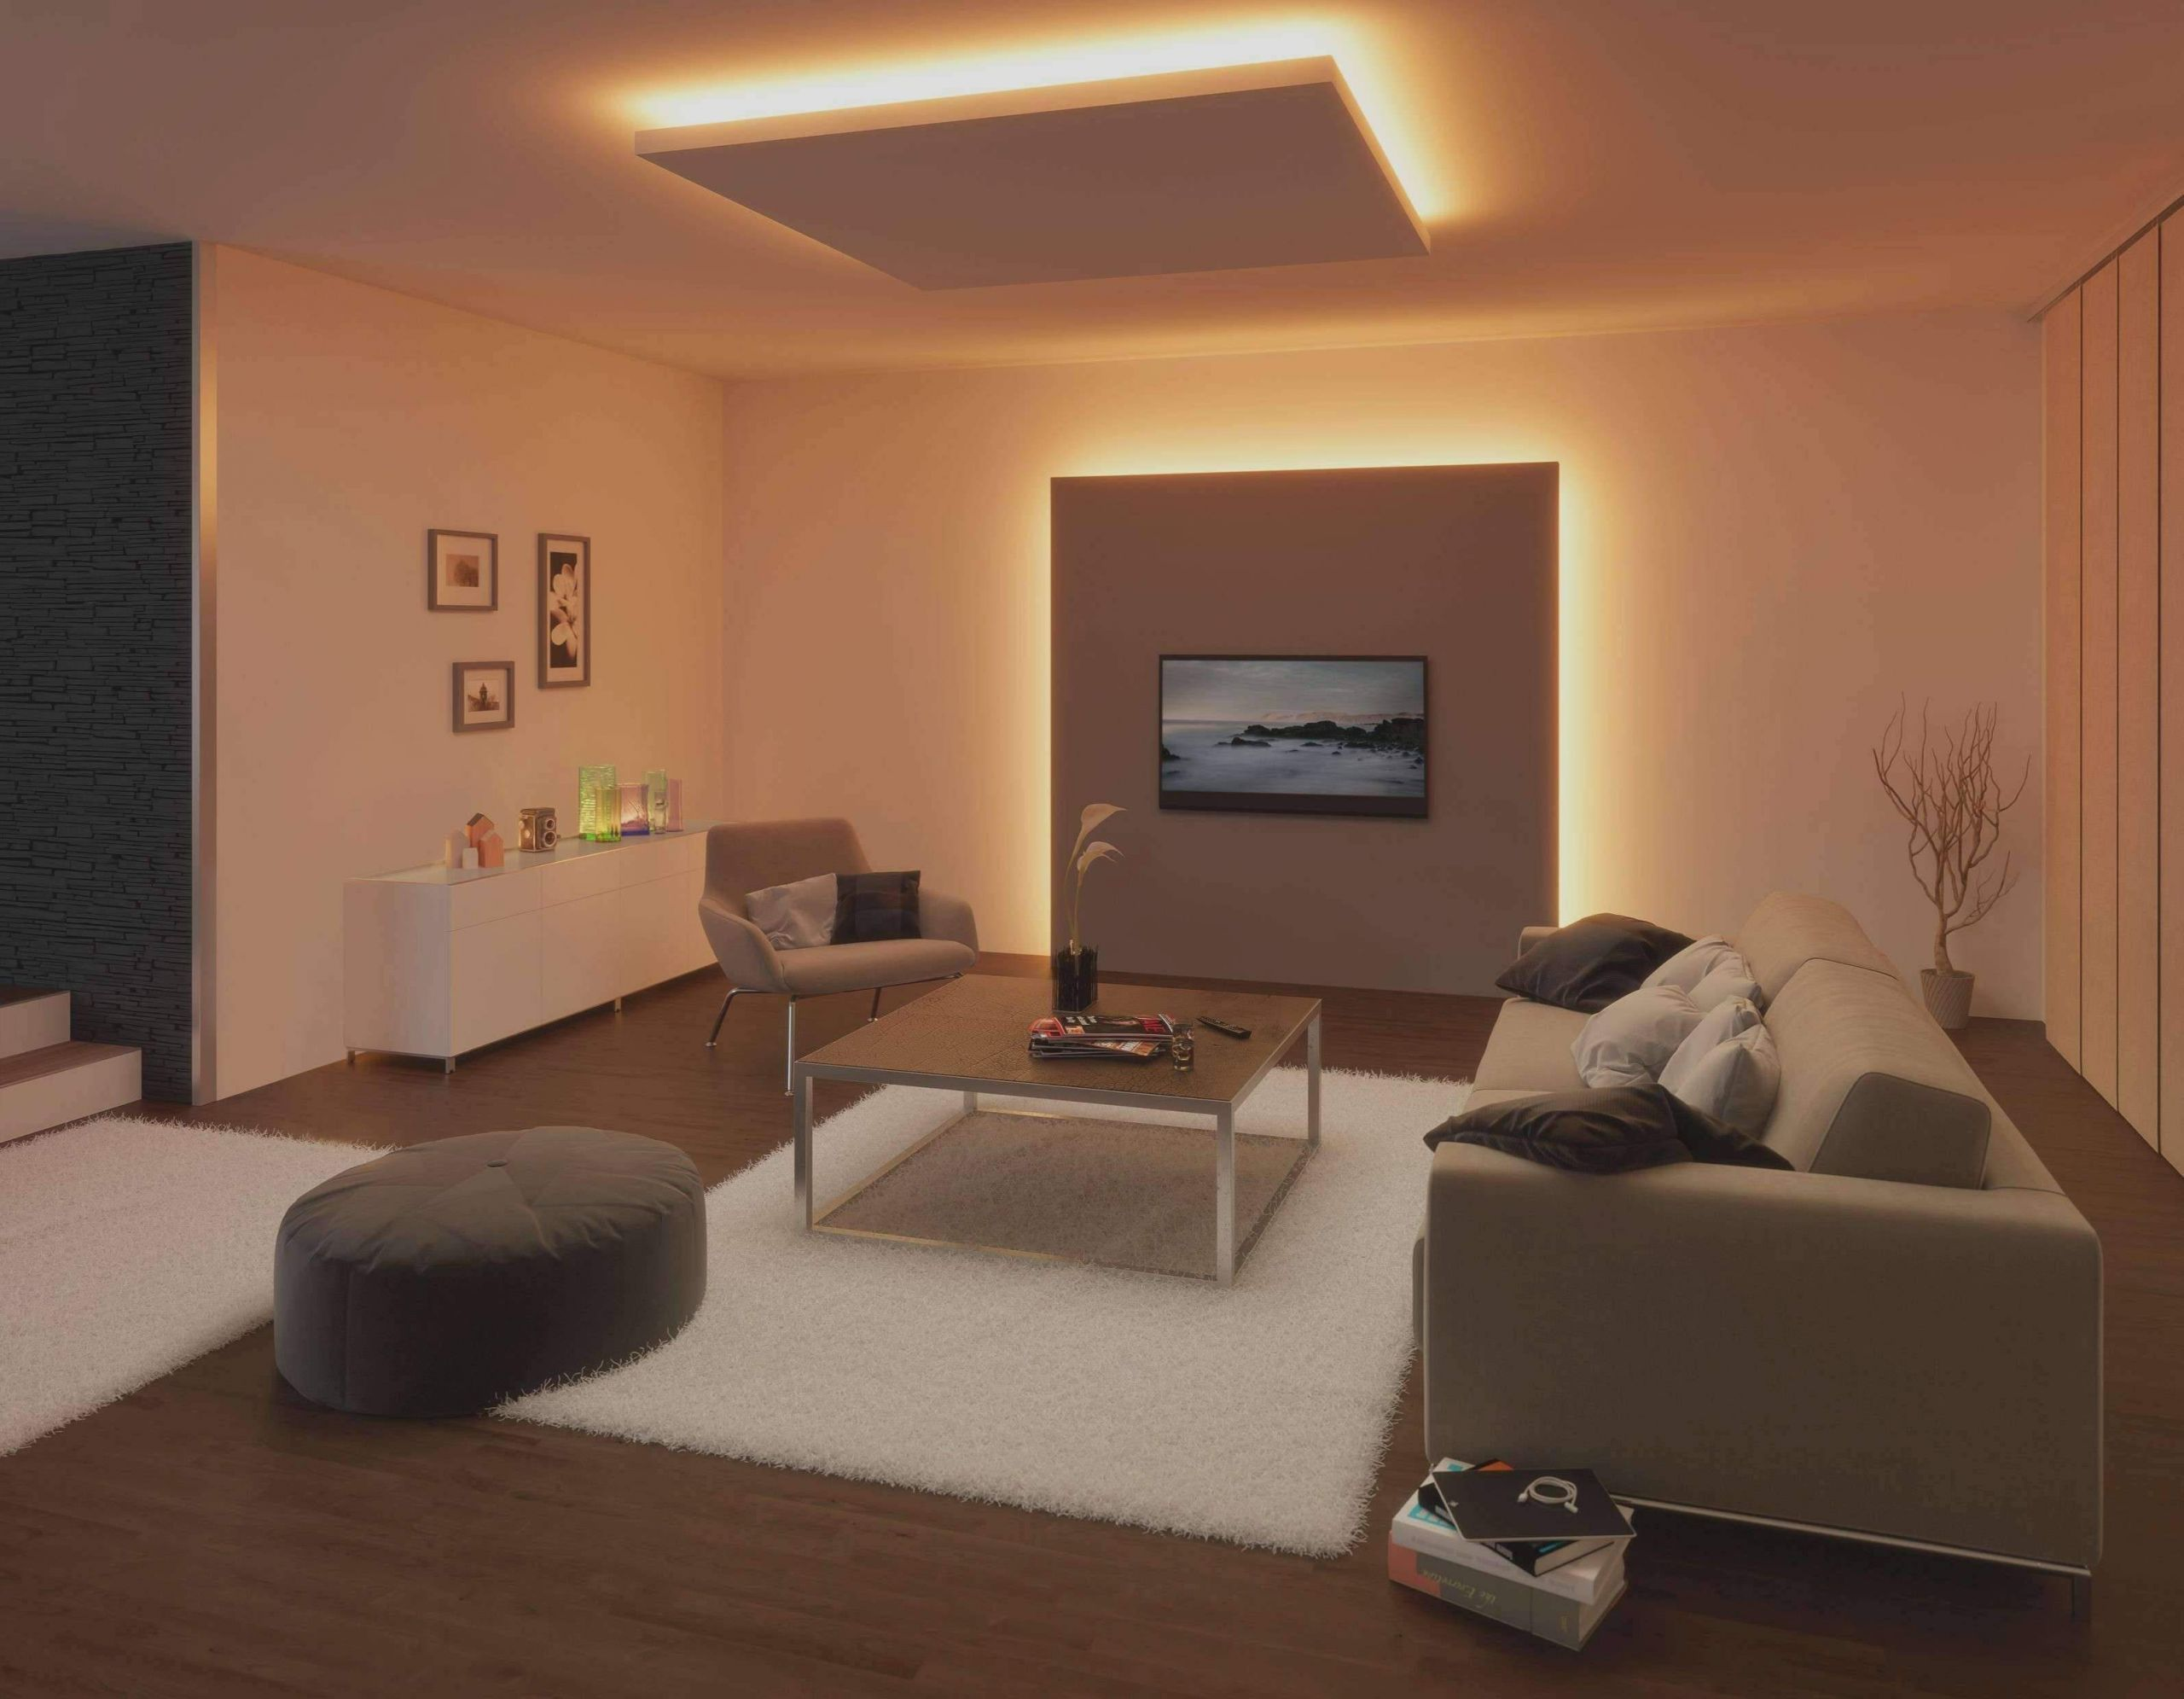 Full Size of Led Beleuchtung Wohnzimmer Ideen Wohnzimmer Mit Led Beleuchtung Led Beleuchtung Wohnzimmer Wand Led Streifen Beleuchtung Wohnzimmer Wohnzimmer Led Beleuchtung Wohnzimmer